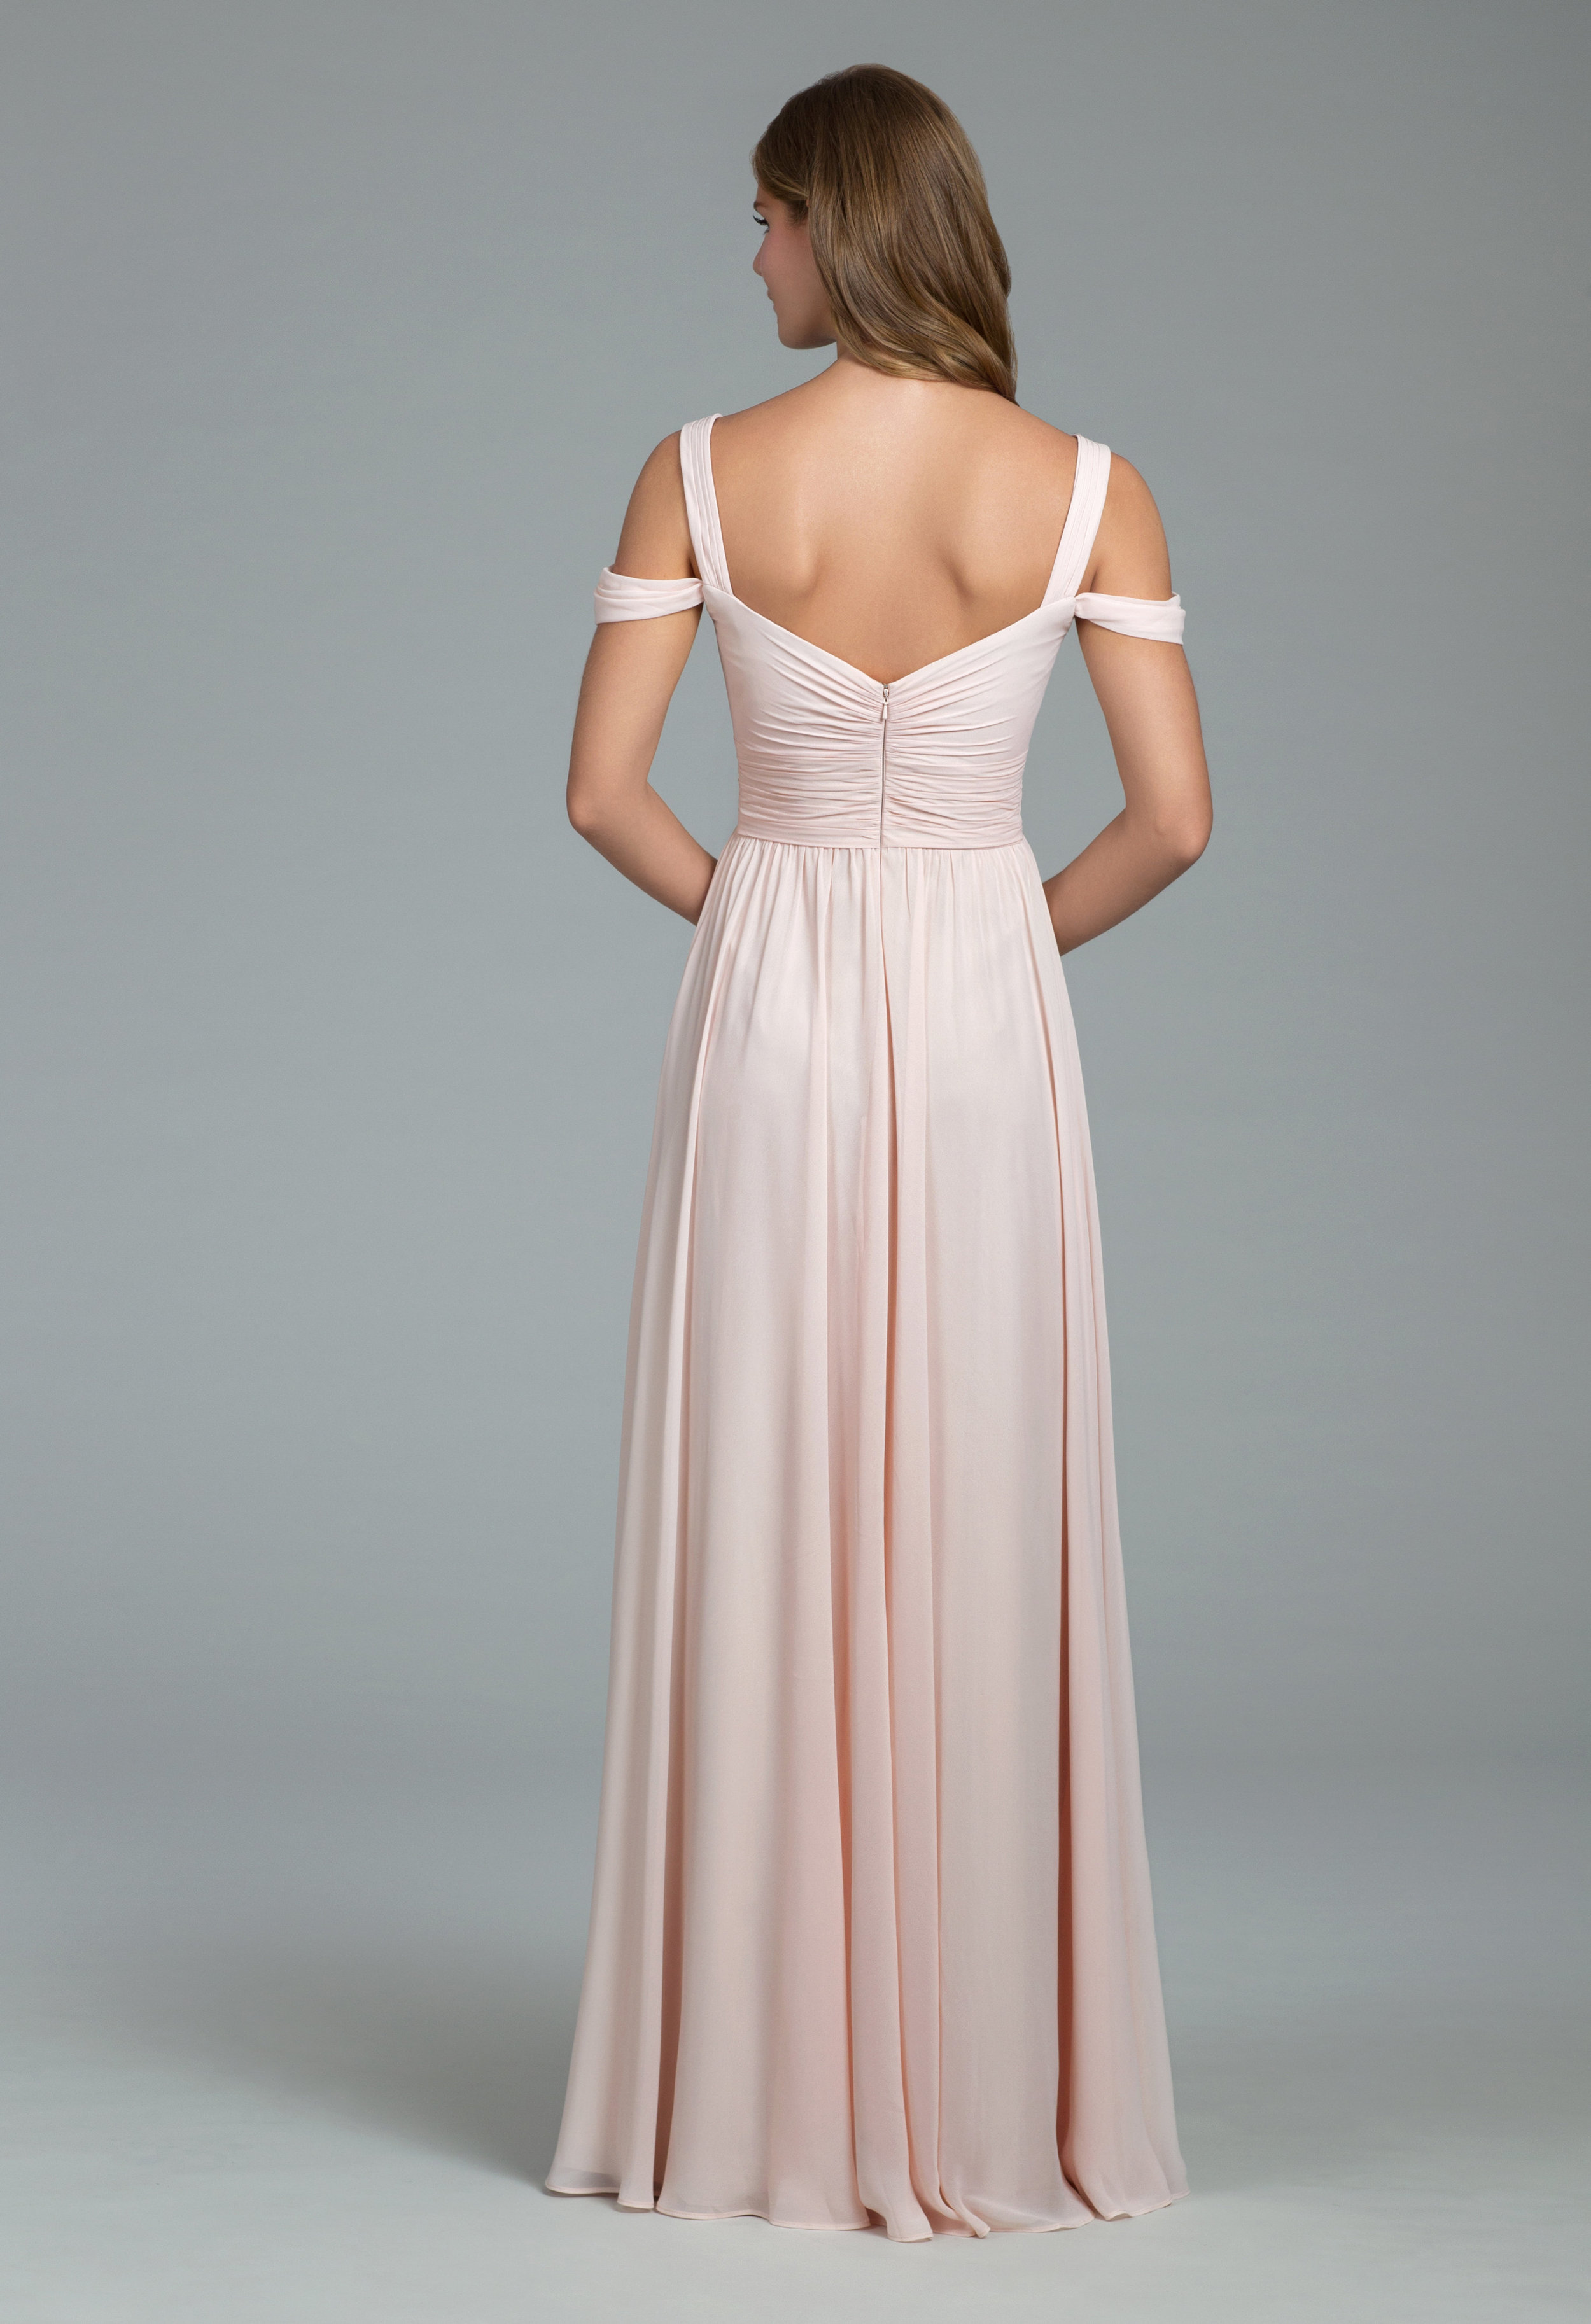 Back of Hayley Paige Occasions style 5801 and 5820 in blush chiffon